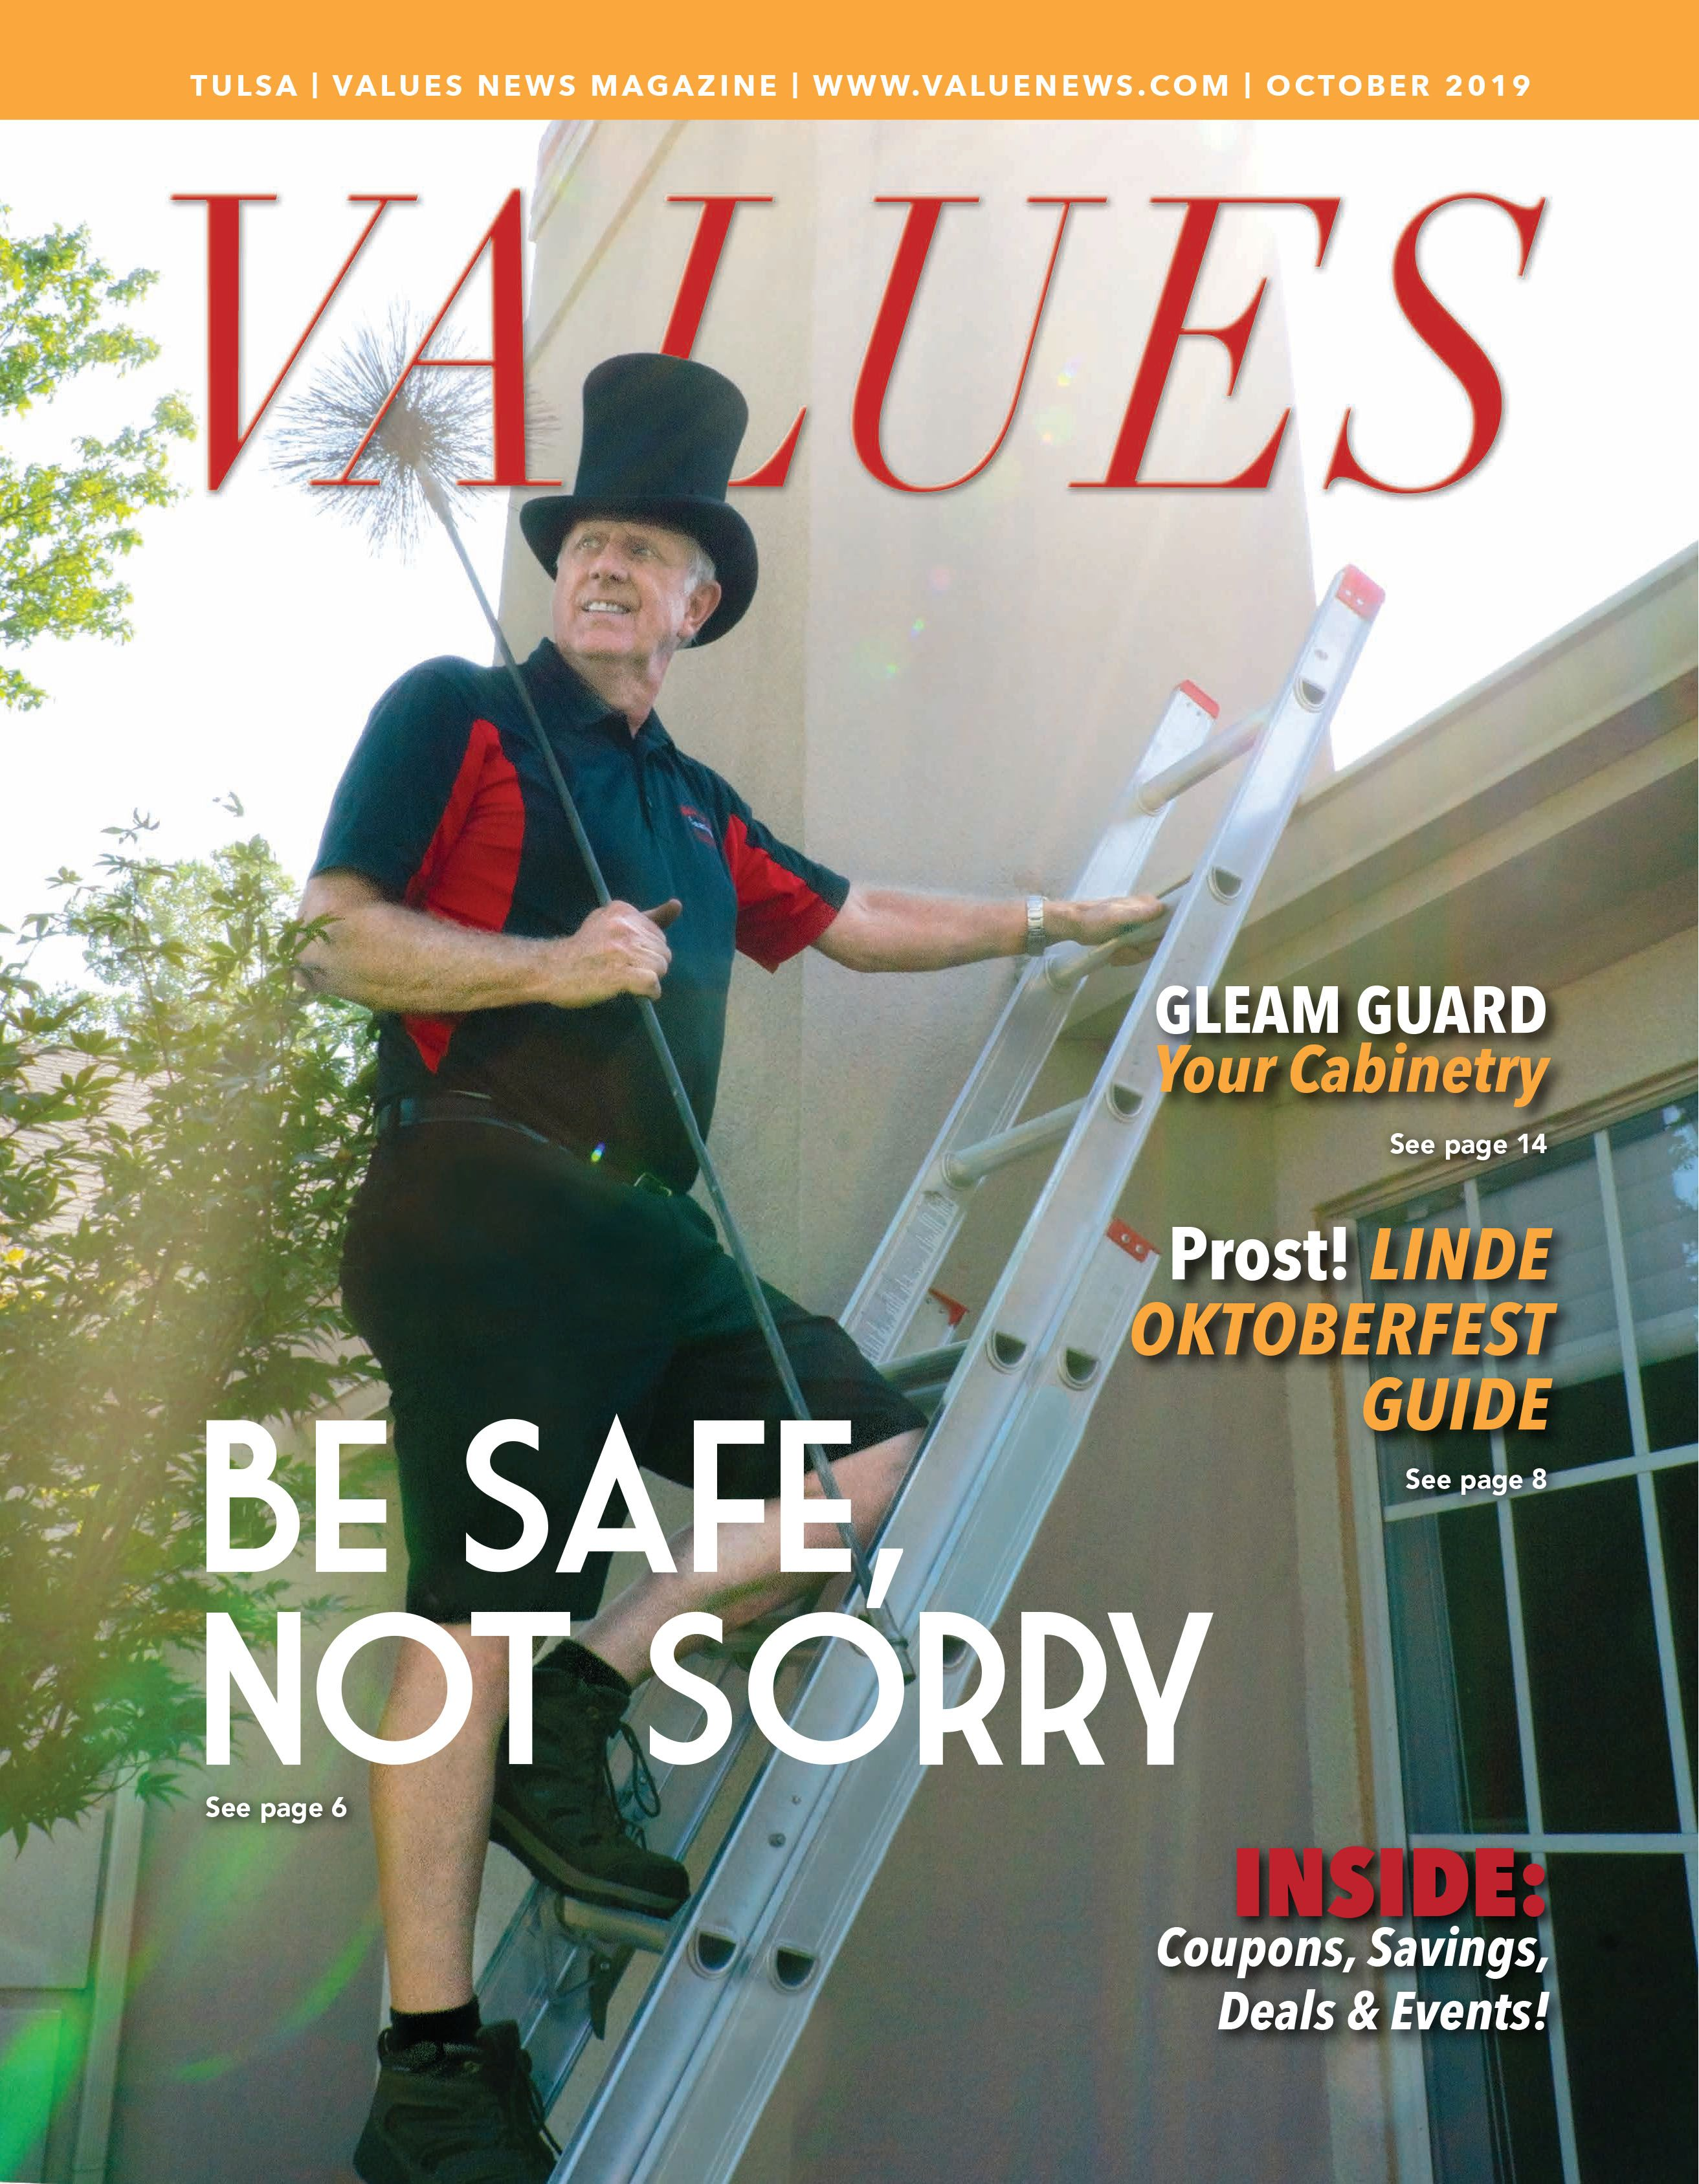 Values October 2019 Tulsa Marketing Solution Local Business Owner News Magazines